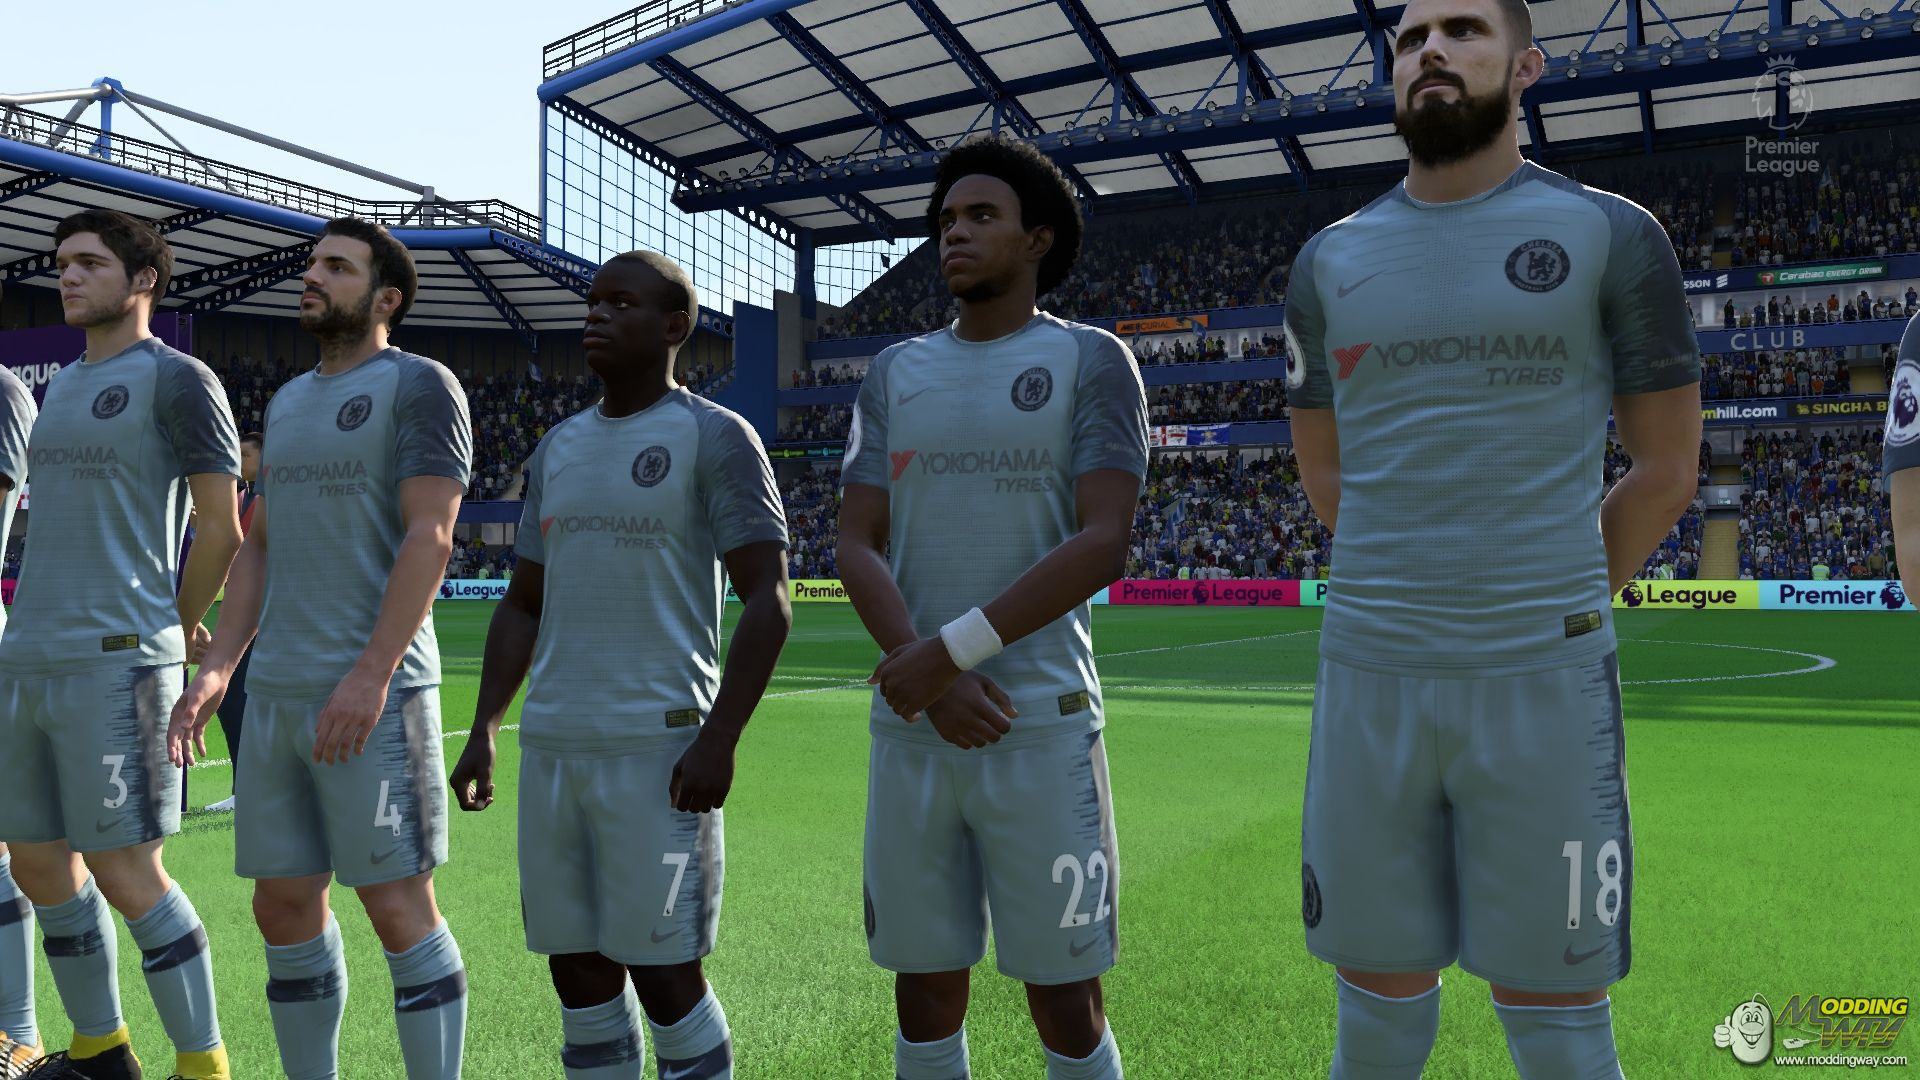 d019c2356e7 Top 15 Fifa 19 Best Kits That Look Awesome | GAMERS DECIDE